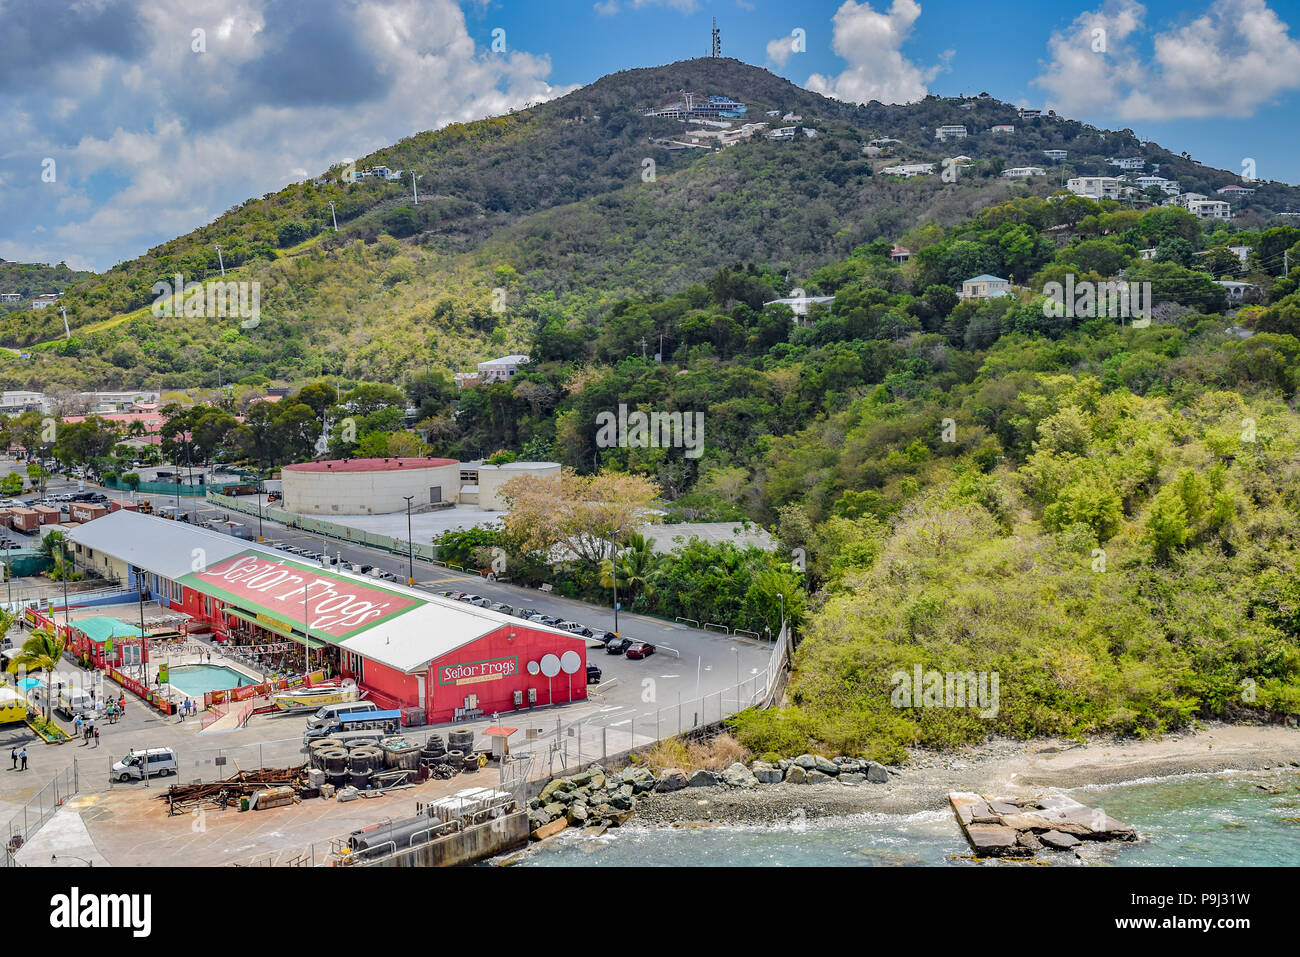 Saint Thomas, US Virgin Islands - April 01 2014: Sky view/ Drone view over Señor Frogs and nearby landscapes in Saint Thomas, US Virgin Islands - Stock Image